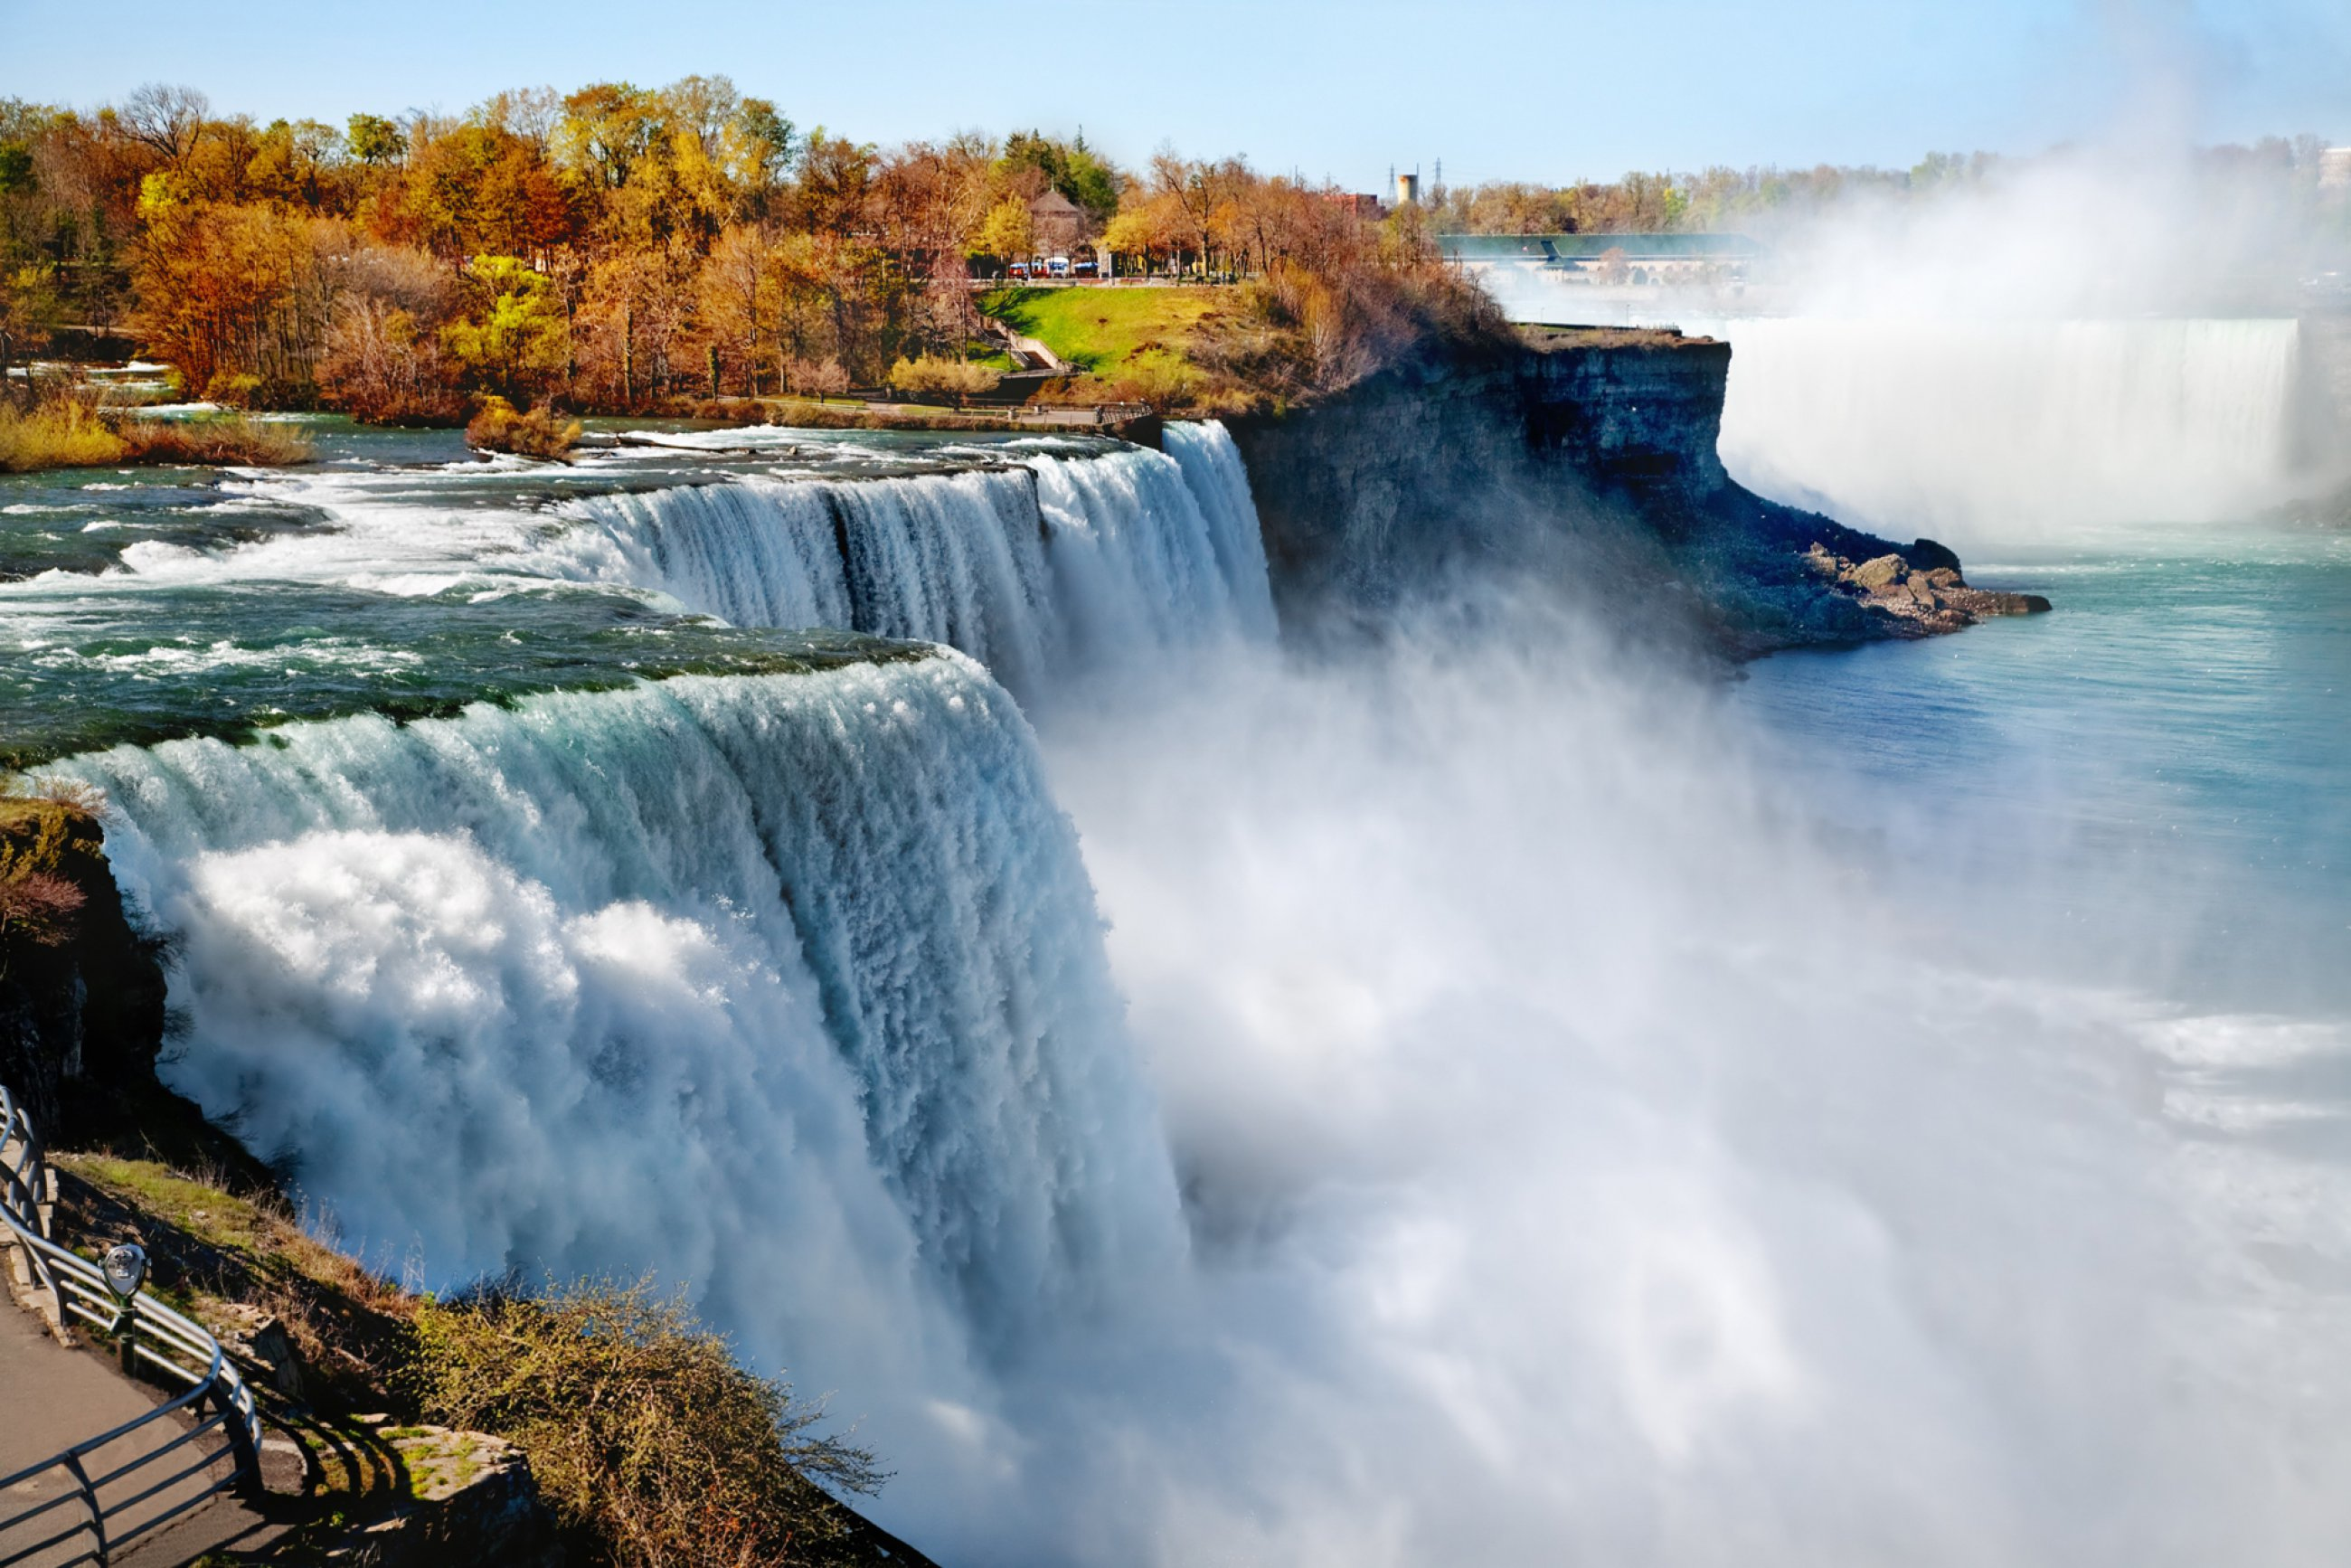 https://bubo.sk/uploads/galleries/5003/niagara-shutterstock-58718383.jpg